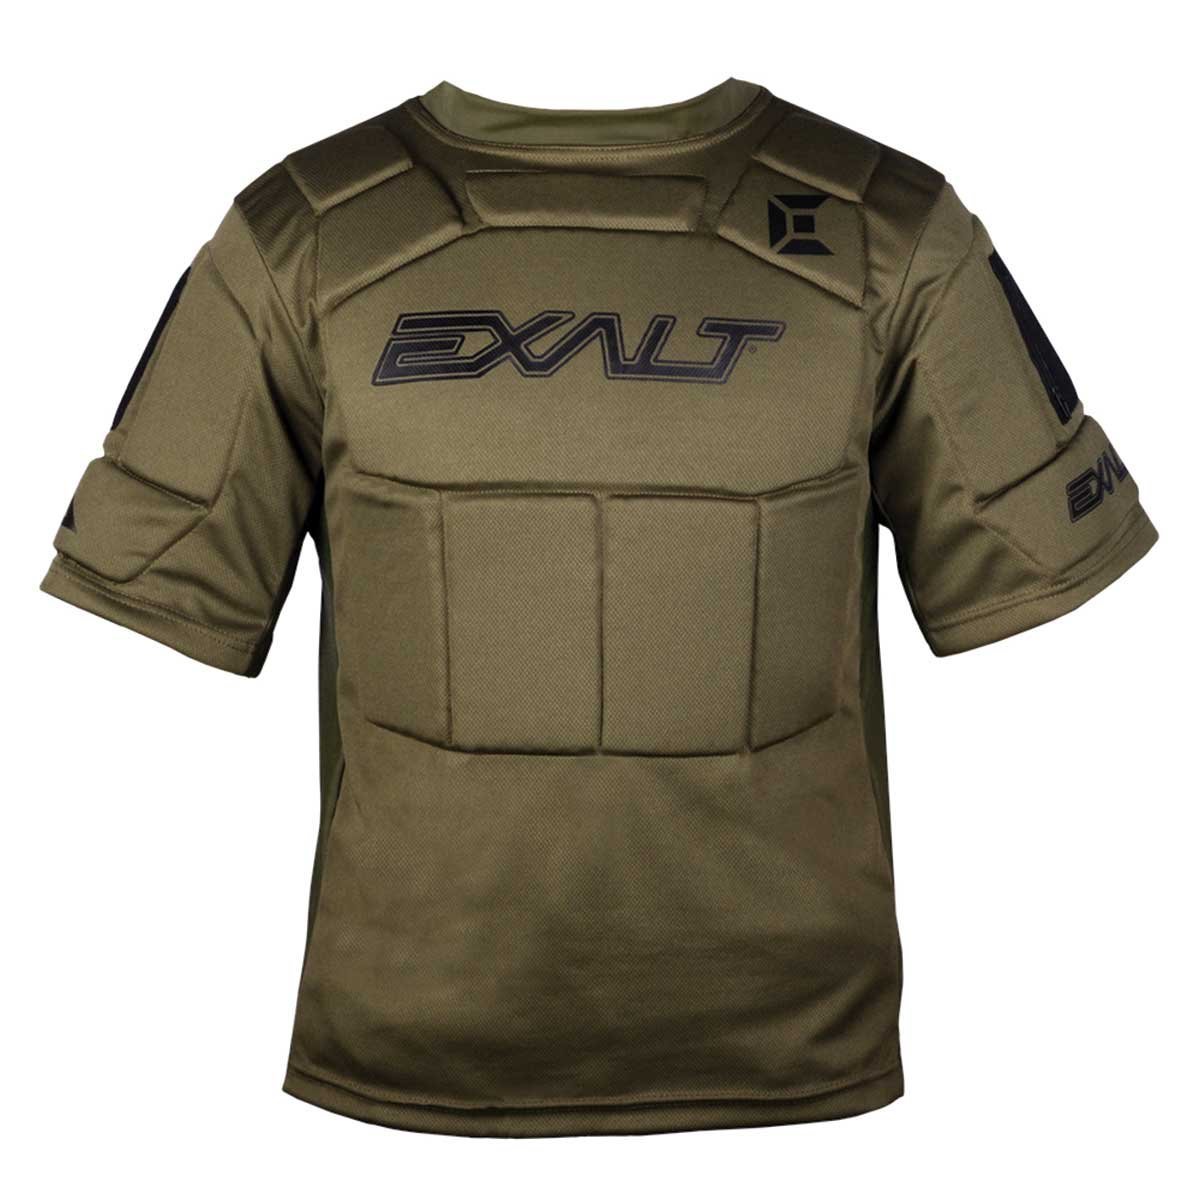 Exalt Paintball Alpha Chest Protector - Olive - L/XL by Exalt